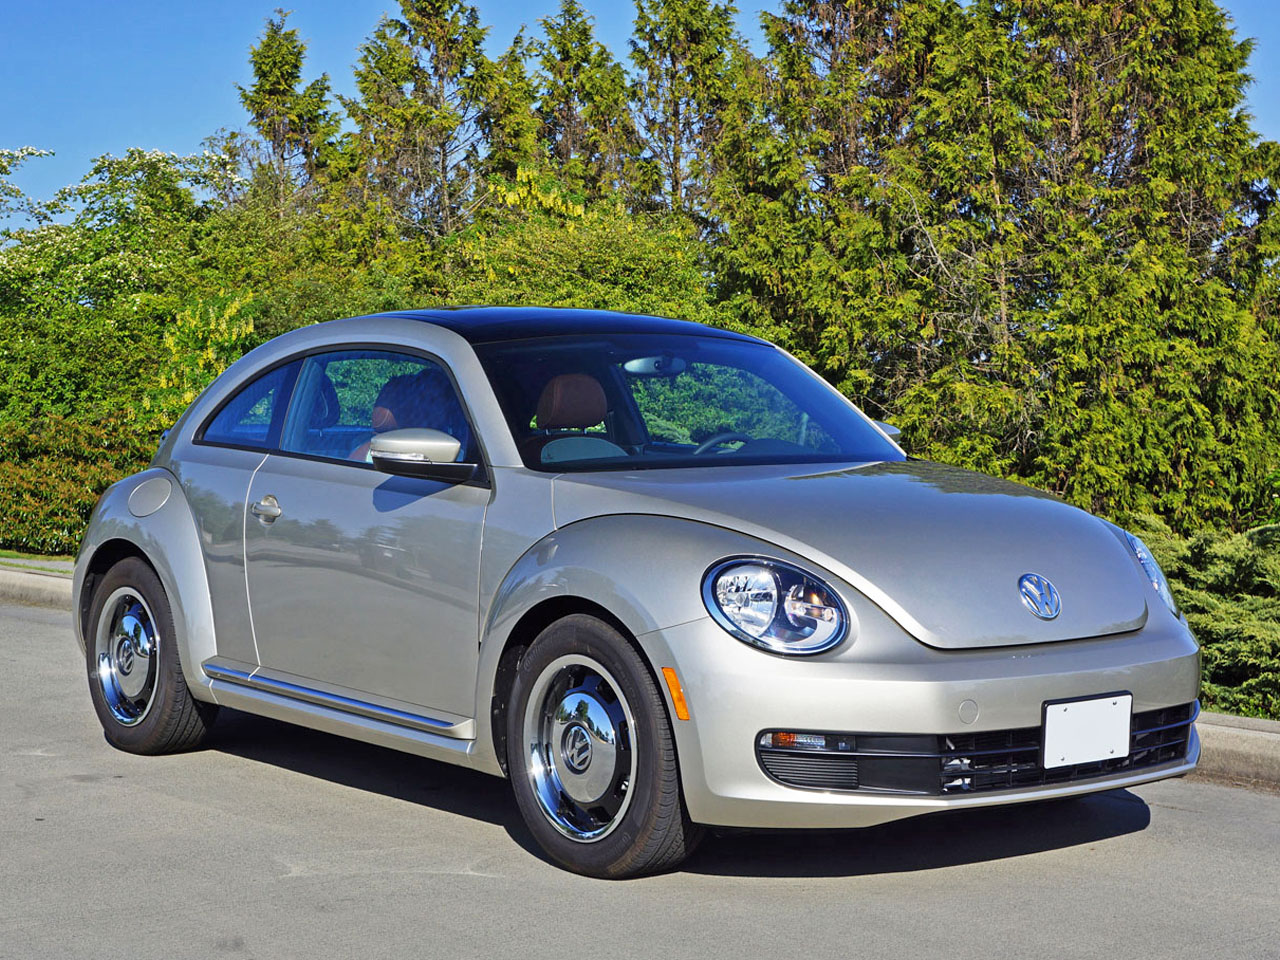 2015 volkswagen beetle classic road test review carcostcanada. Black Bedroom Furniture Sets. Home Design Ideas